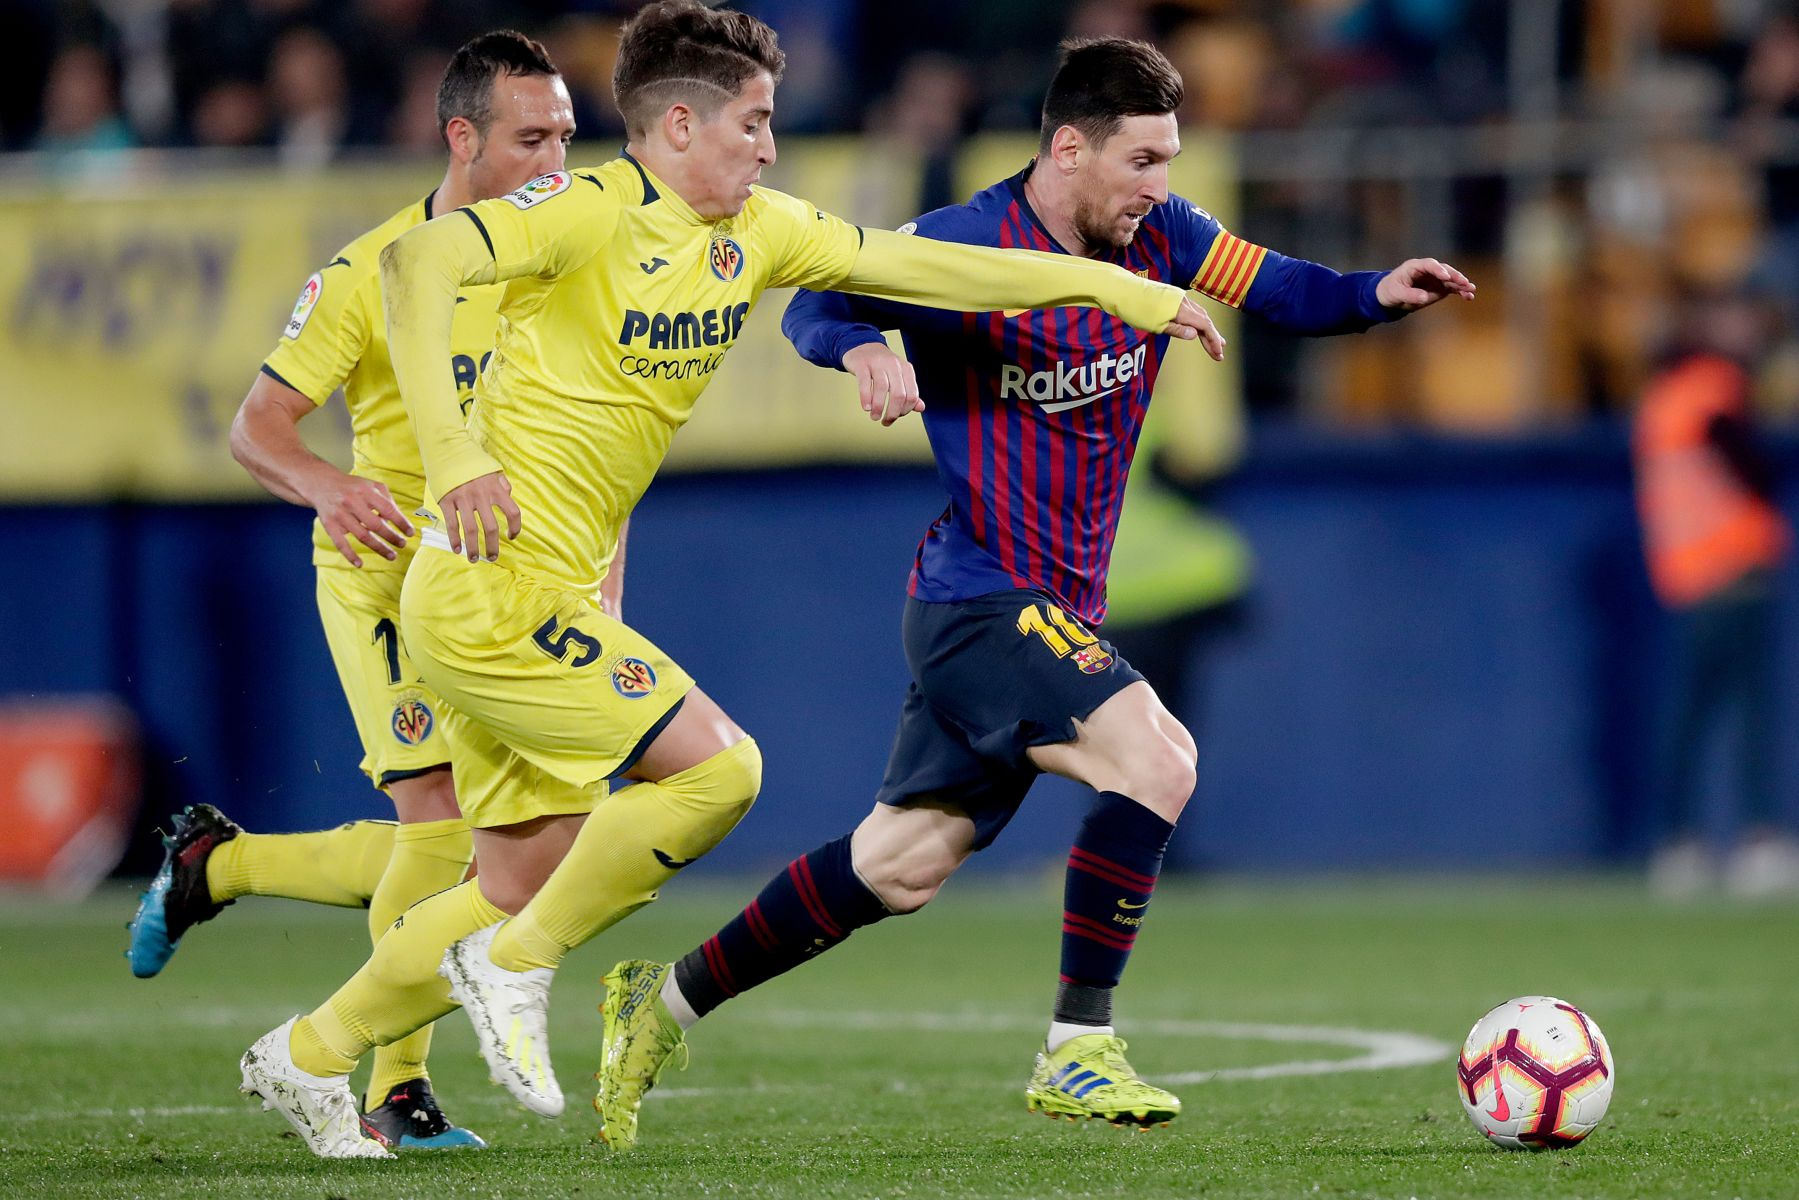 Copa del Rey finale 2019 dansk tv og streaming